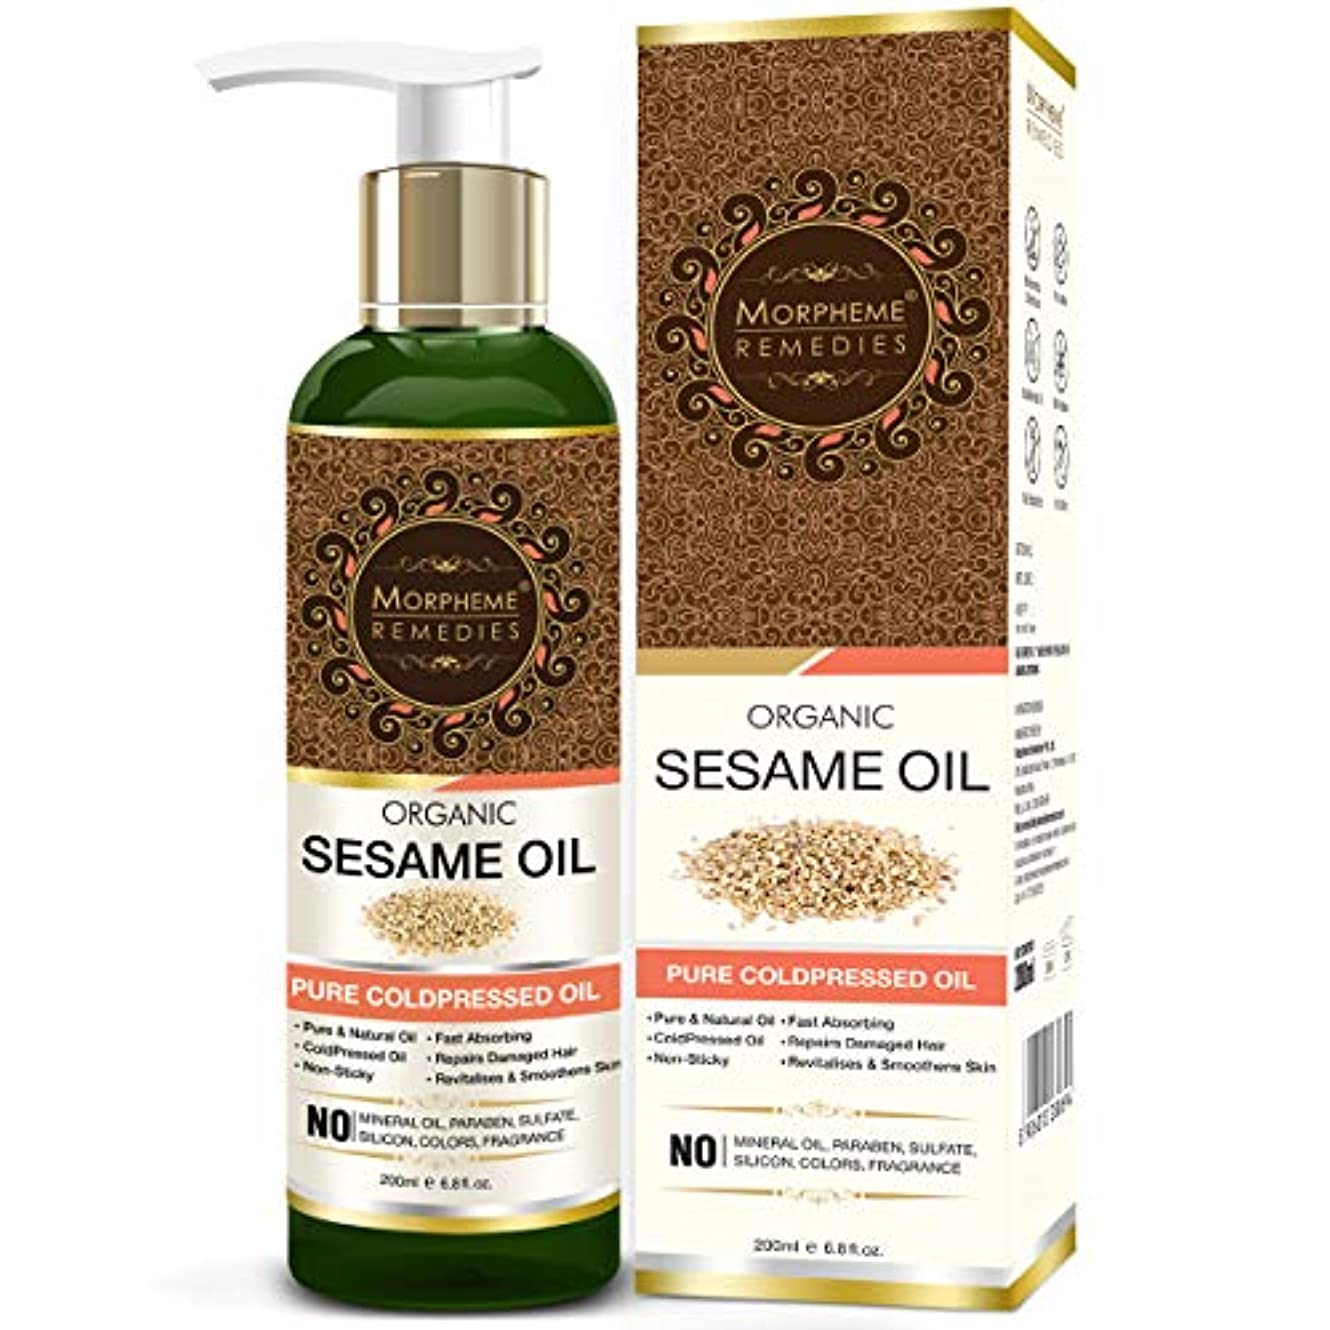 職人マネージャー代わりのMorpheme Remedies Organic Sesame Oil (Pure ColdPressed Oil) For Hair, Body, Skin Care, Massage, 200 ml